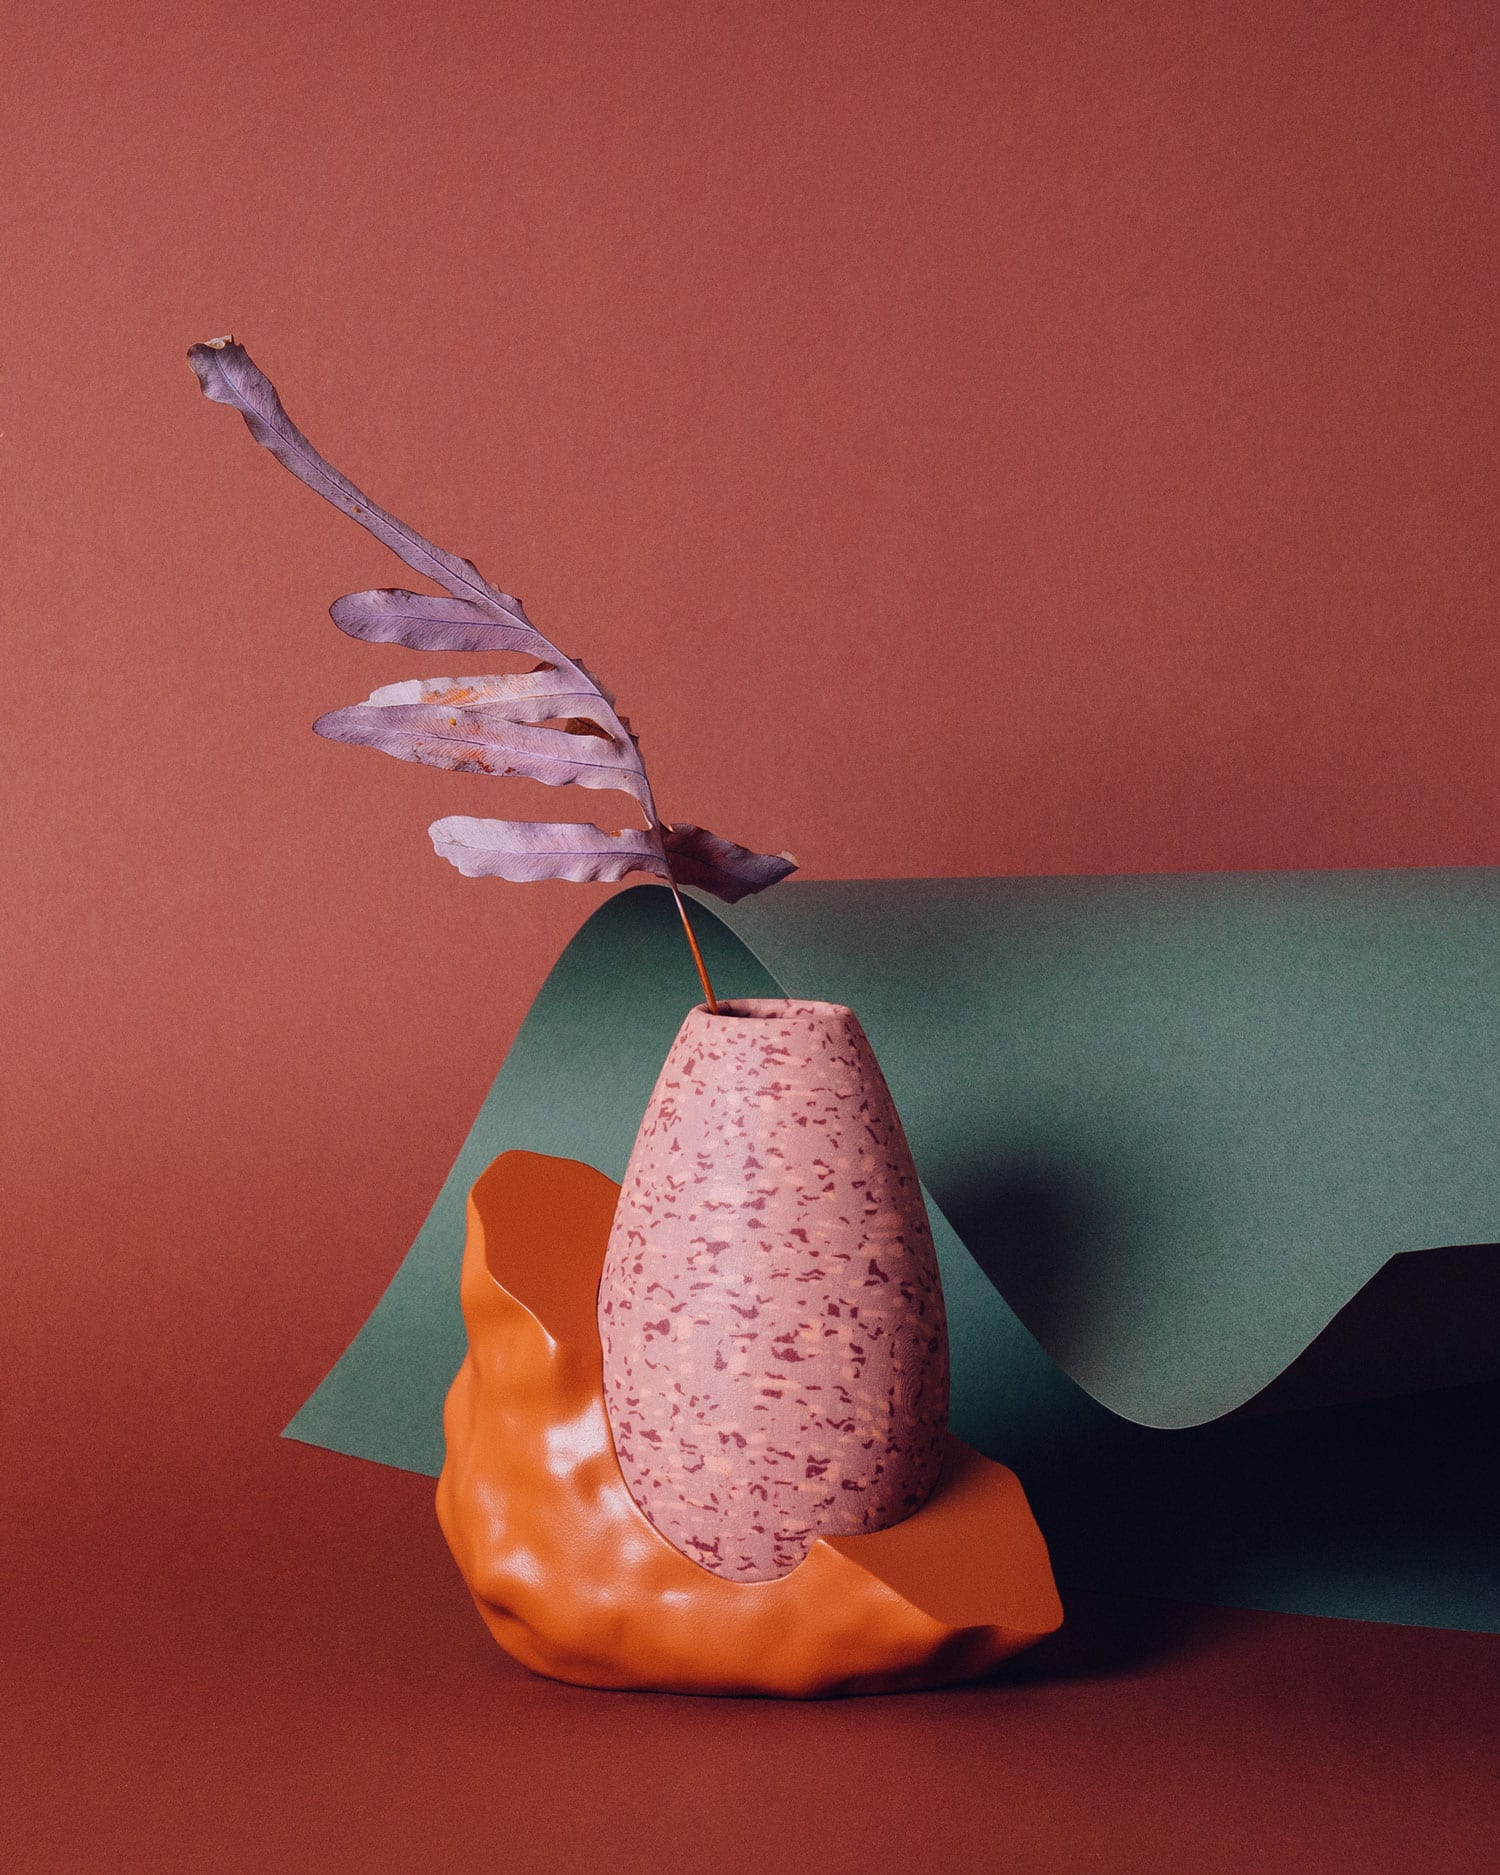 Limited Edition 3D Printed Sculptures from UB and Inspiring Artists on Instagram   Yellowtrace